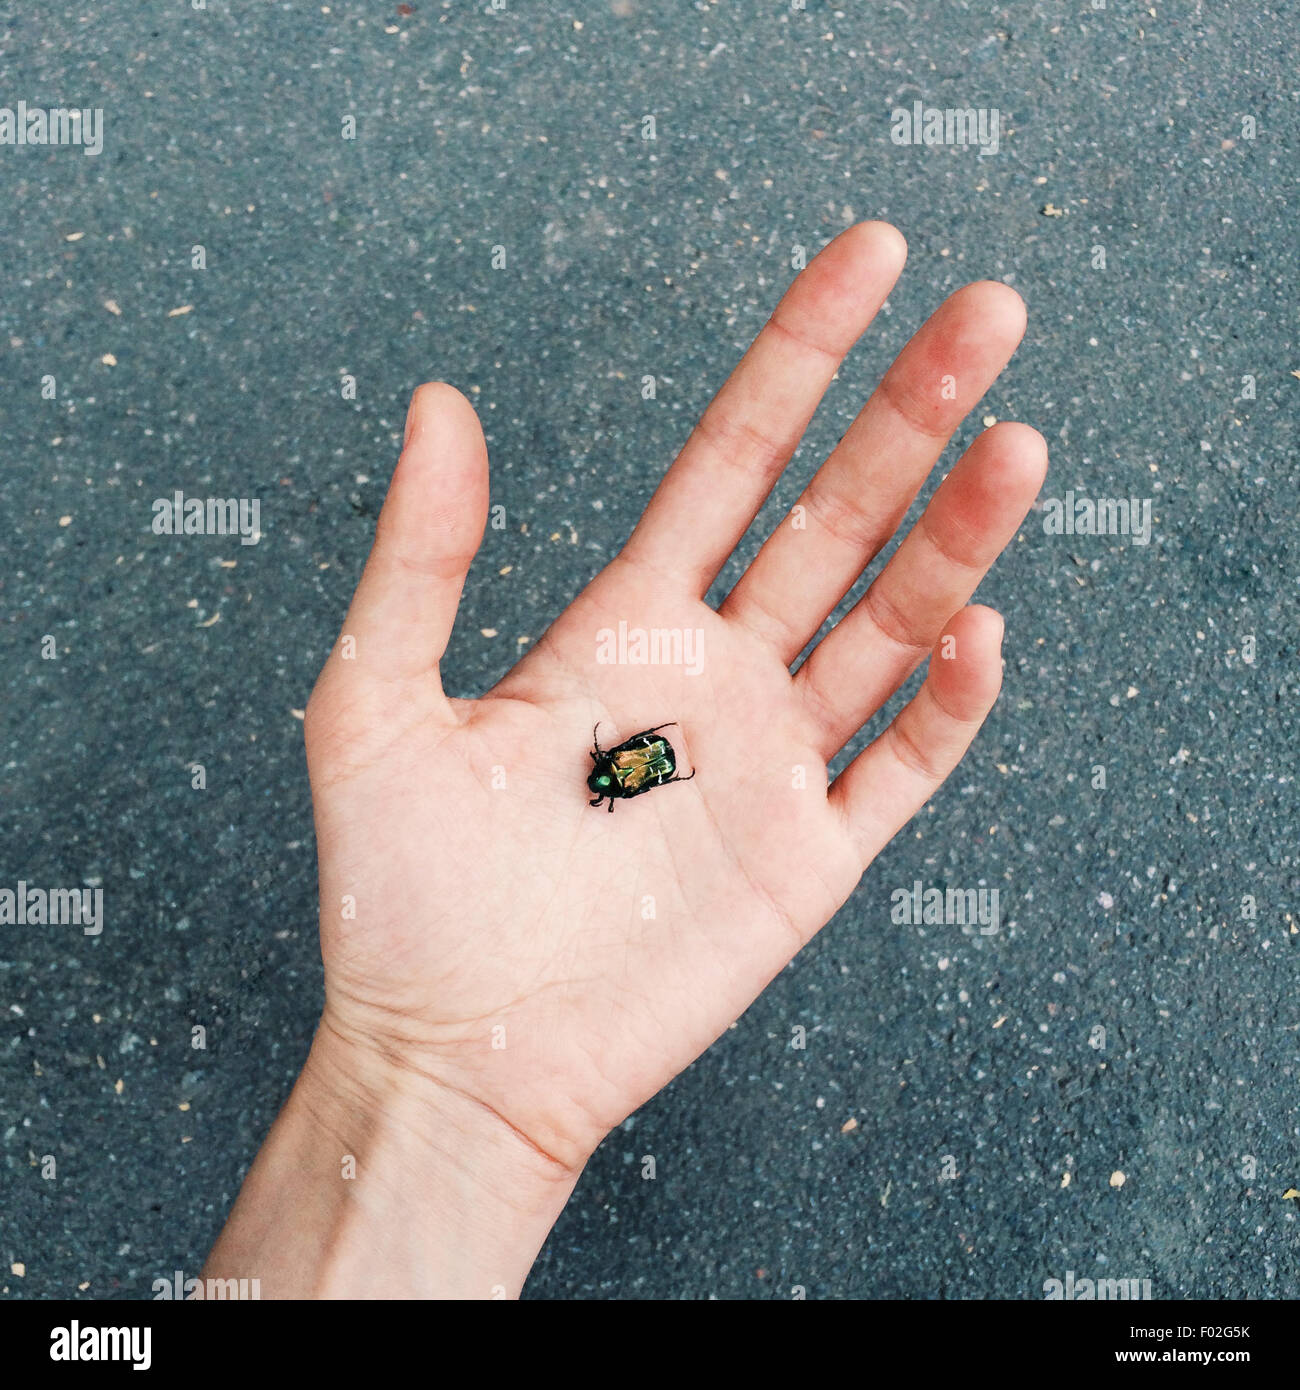 Bug in the palm of a hand - Stock Image